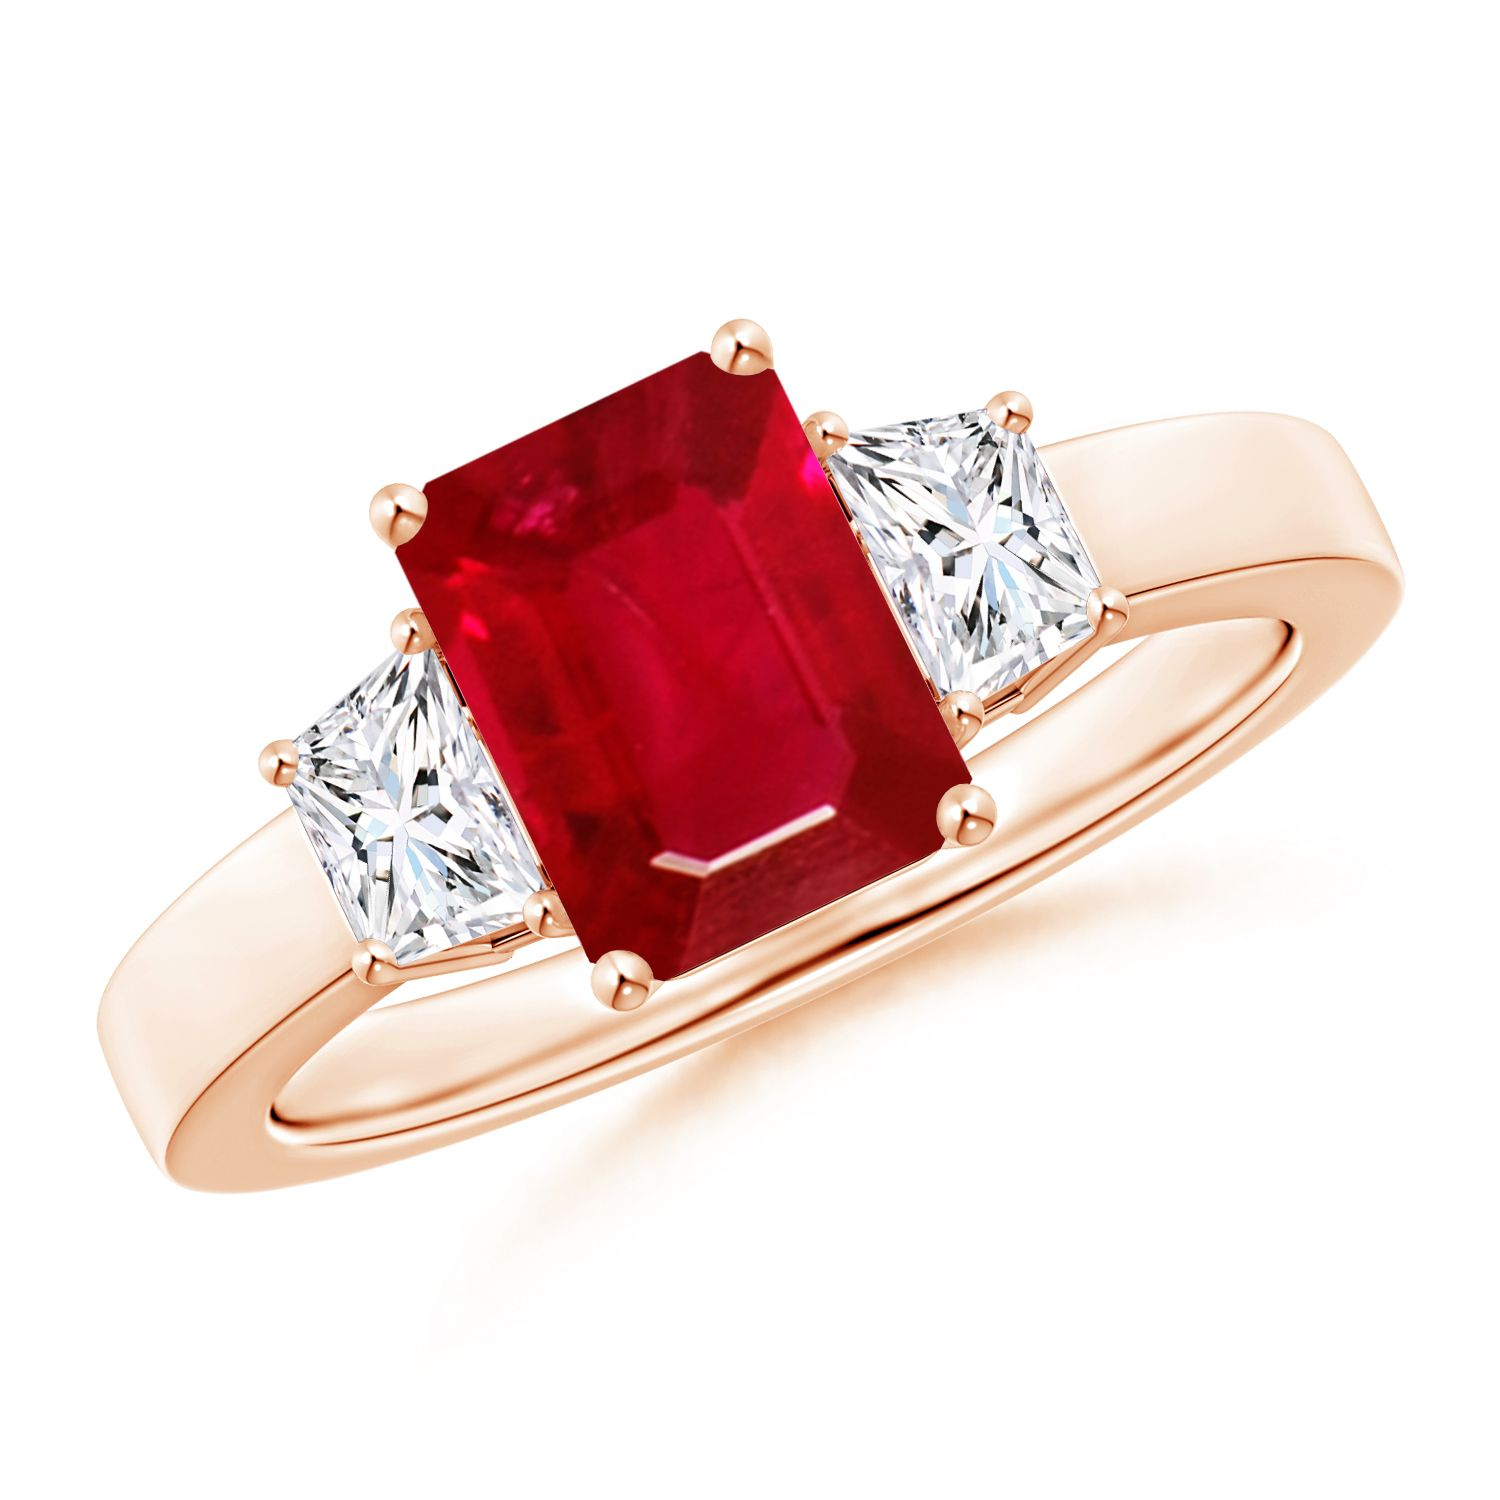 Angara Emerald-Cut Natural Ruby Three Stone Ring in Platinum pnqWK8L